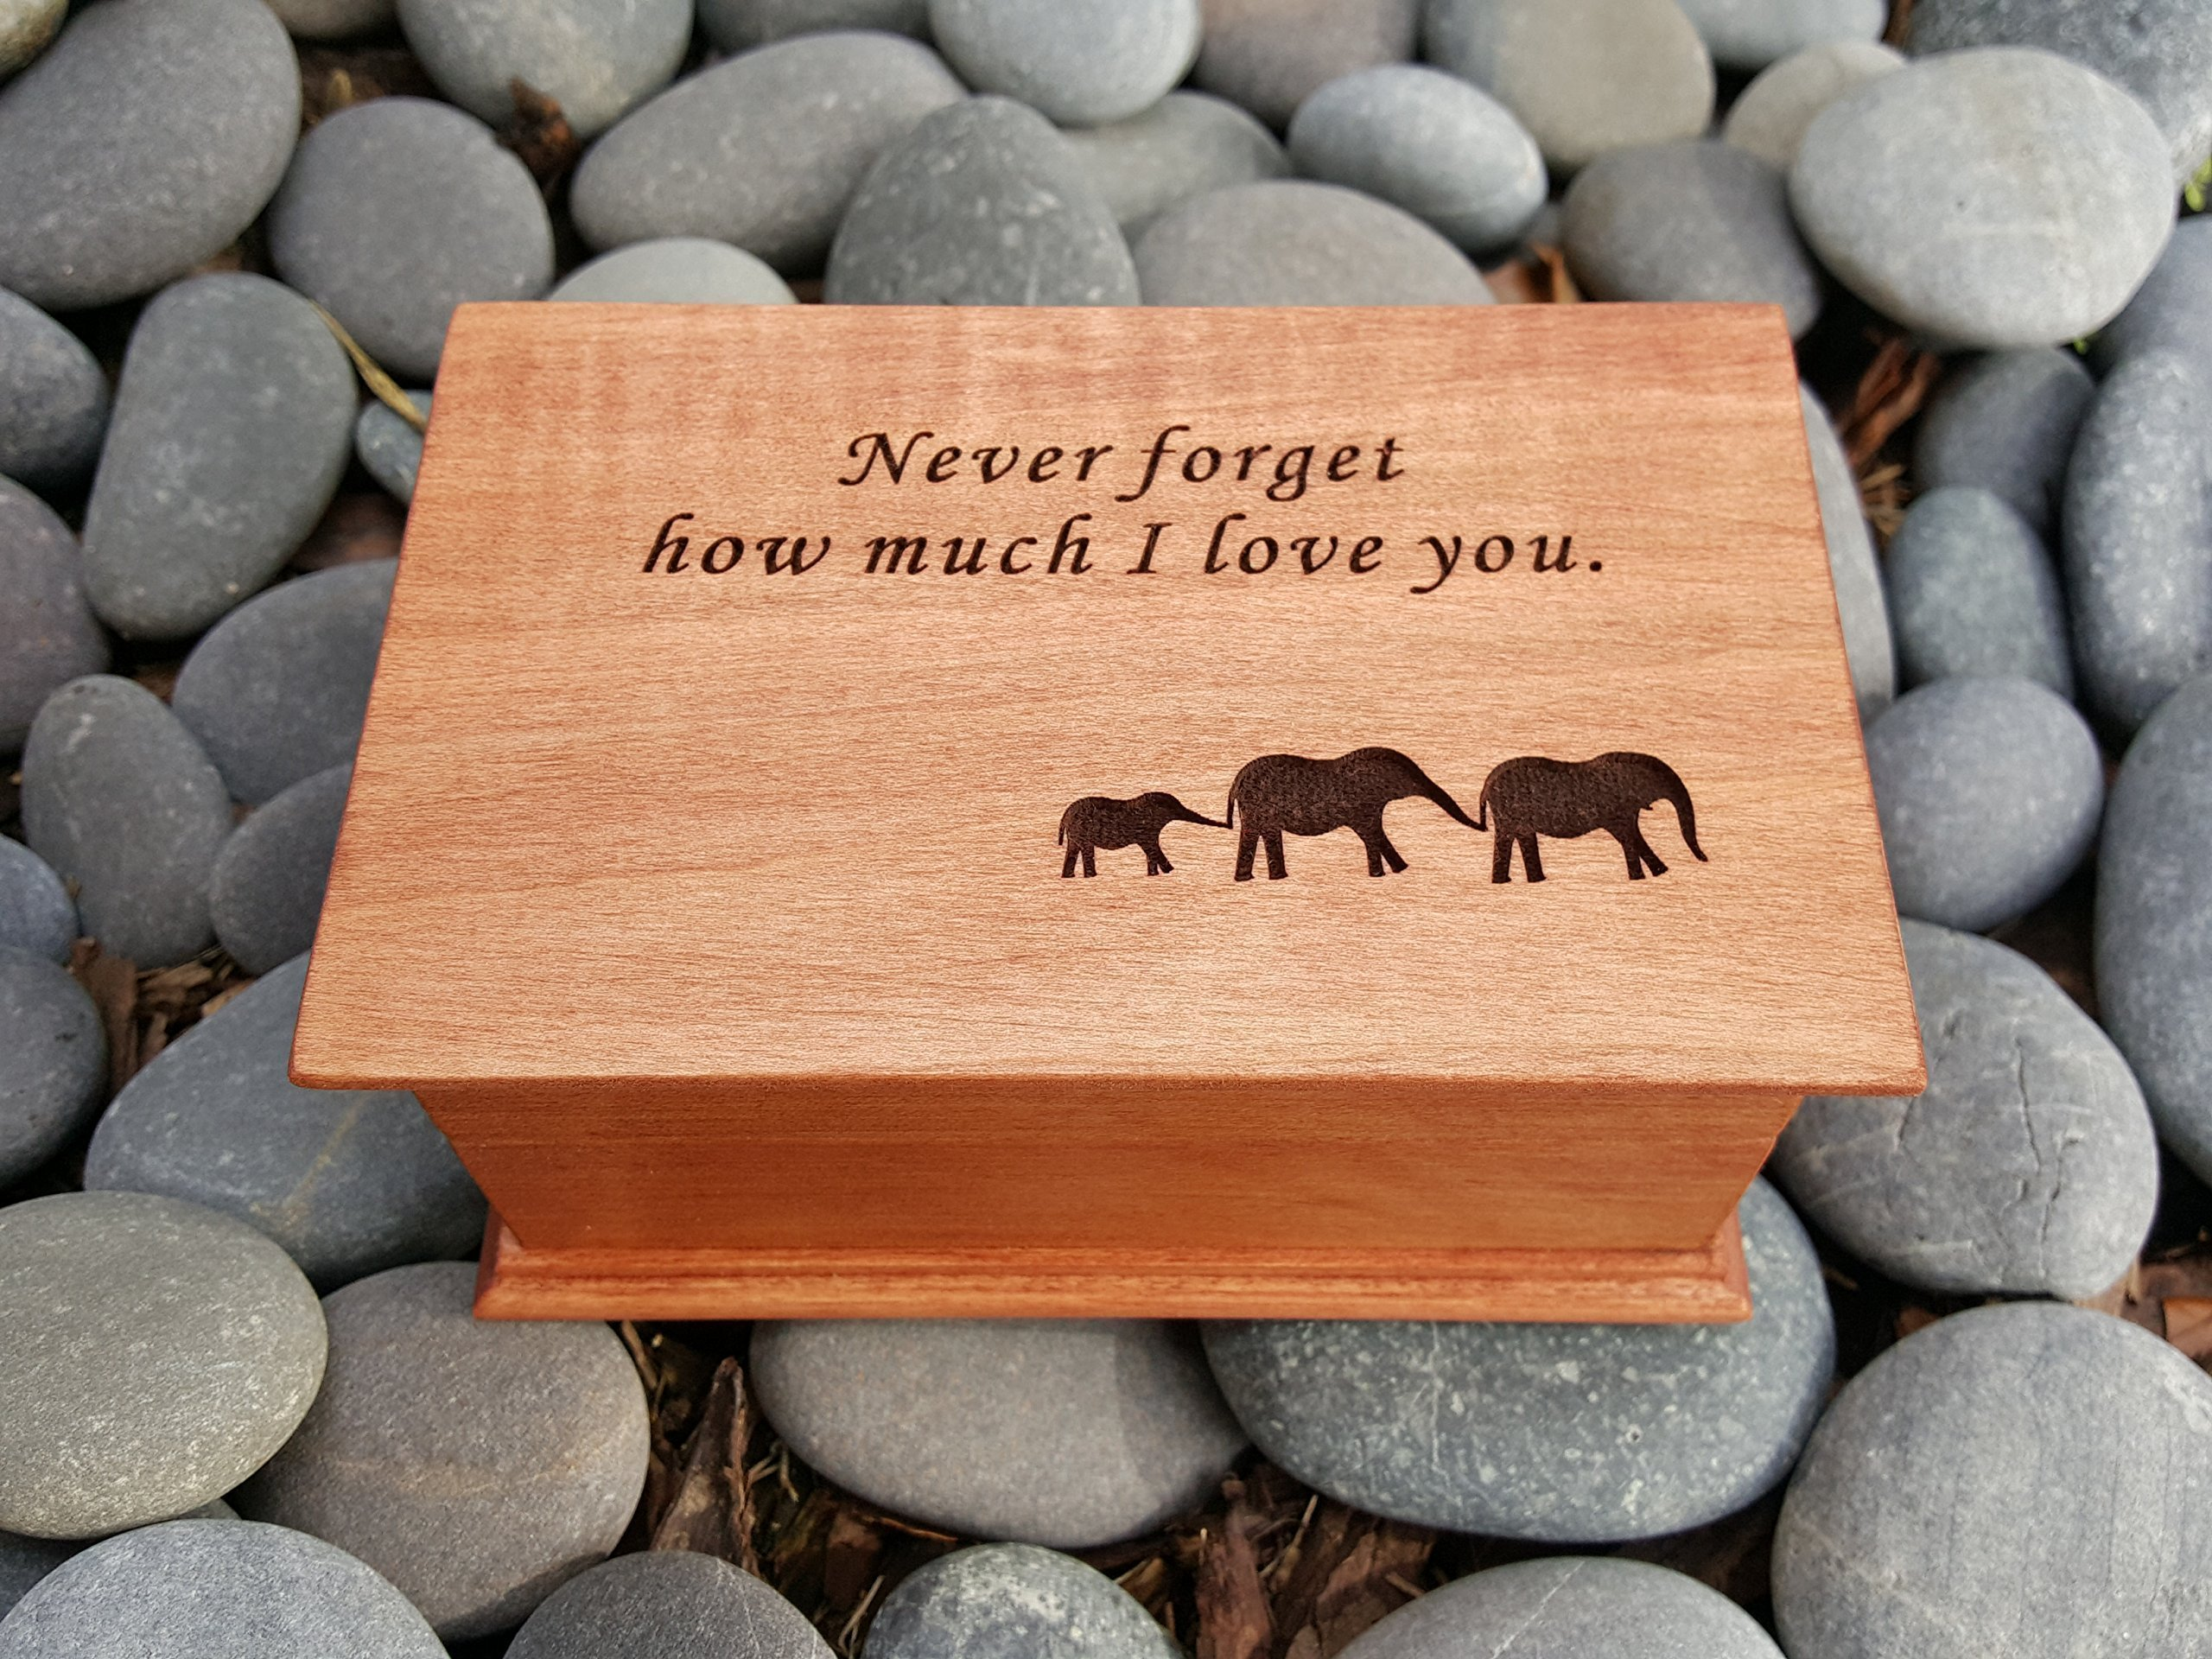 jewelry box, music box, custom made music box, Never forget how much I love you, elephants, elephant family, handmade jewelry box, anniversary gift, simplycoolgifts by Simplycoolgifts